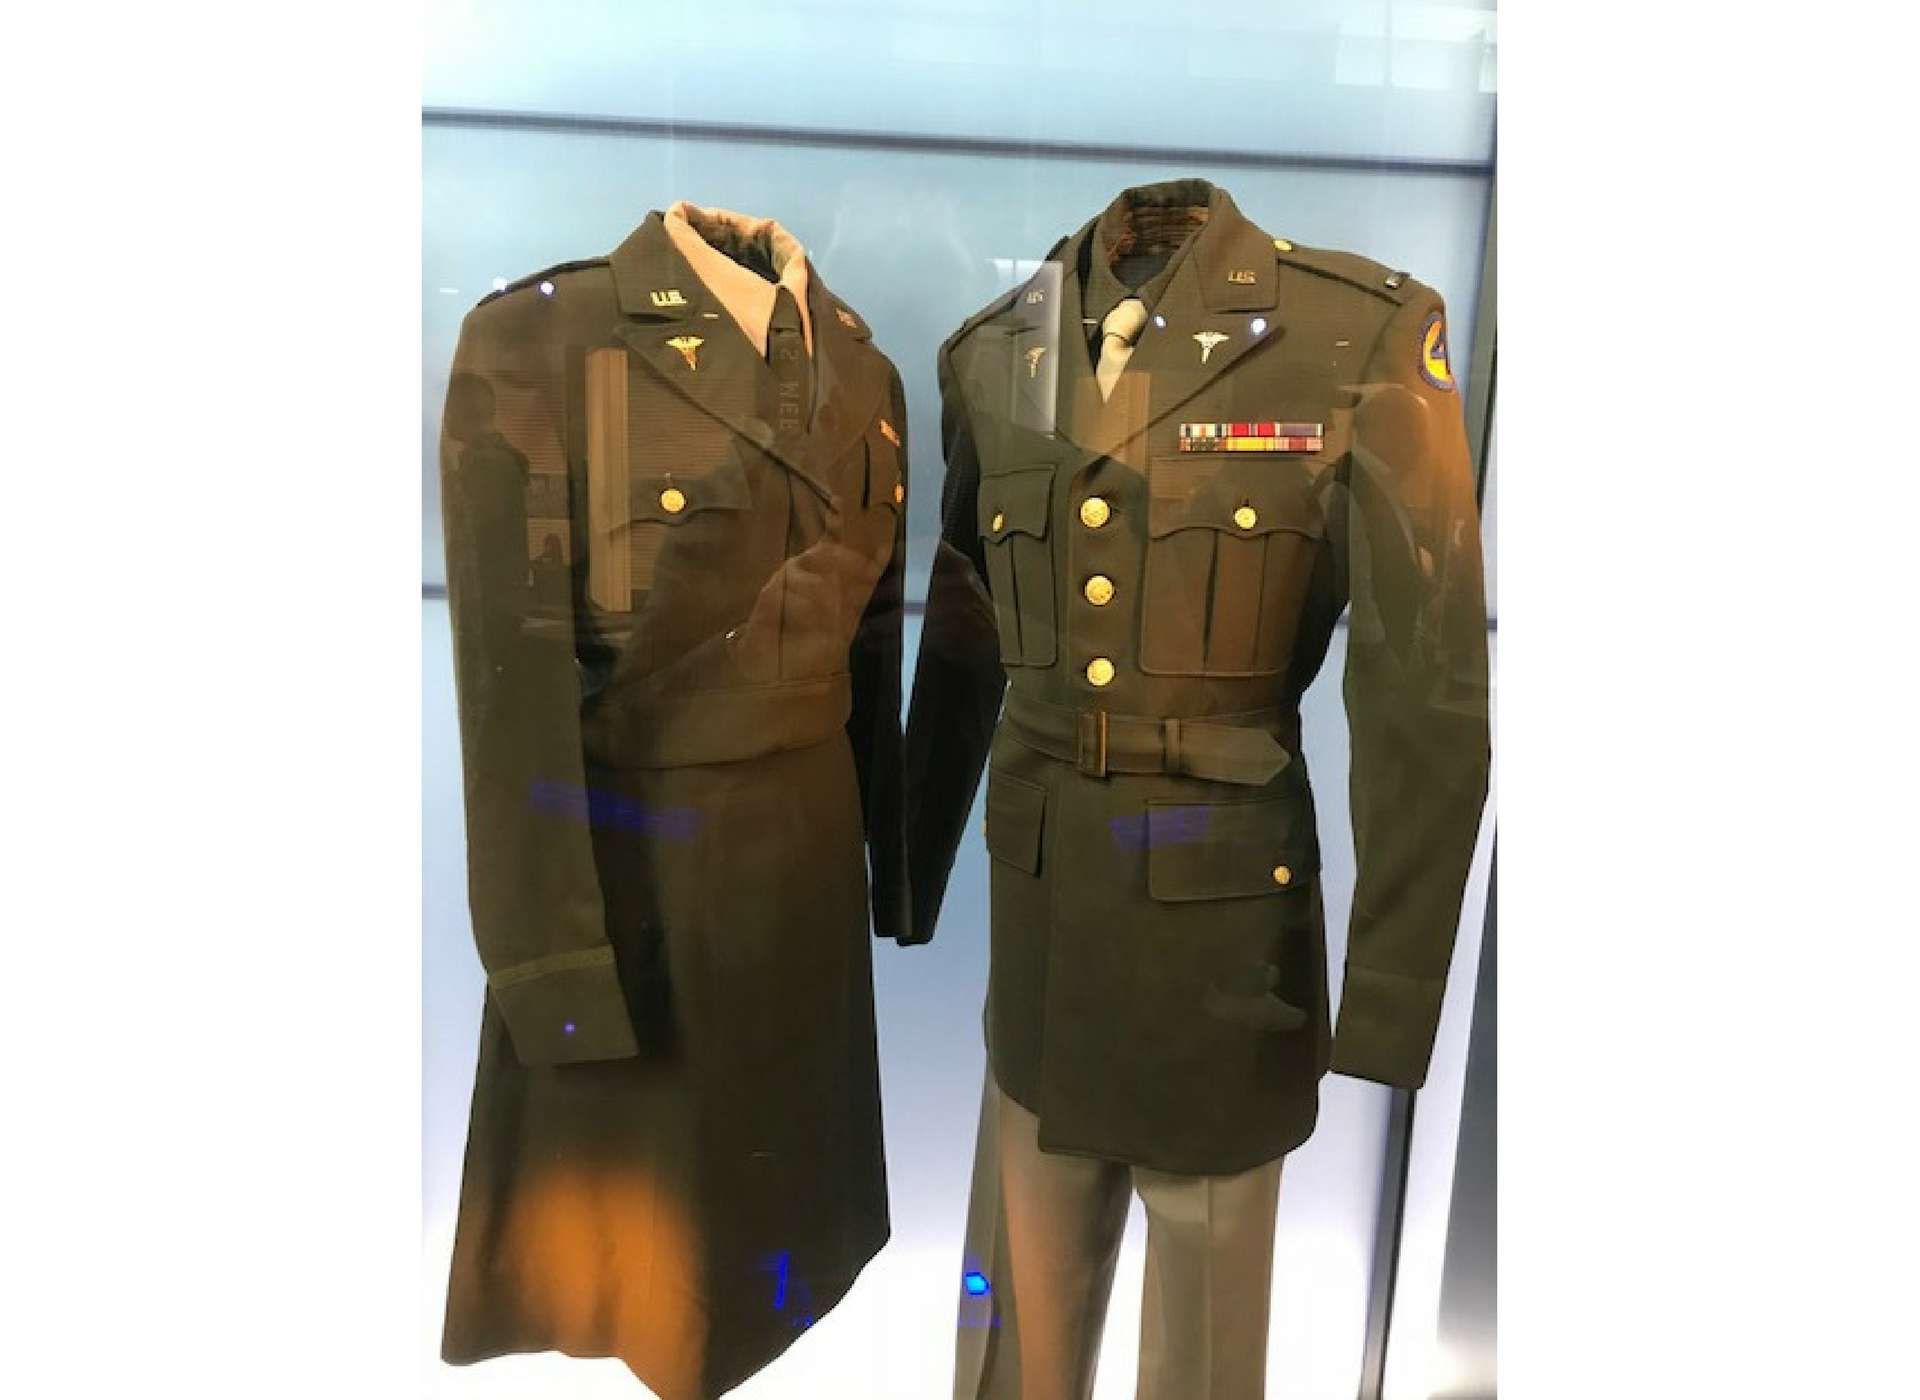 a3eddada82af3 winter service uniform